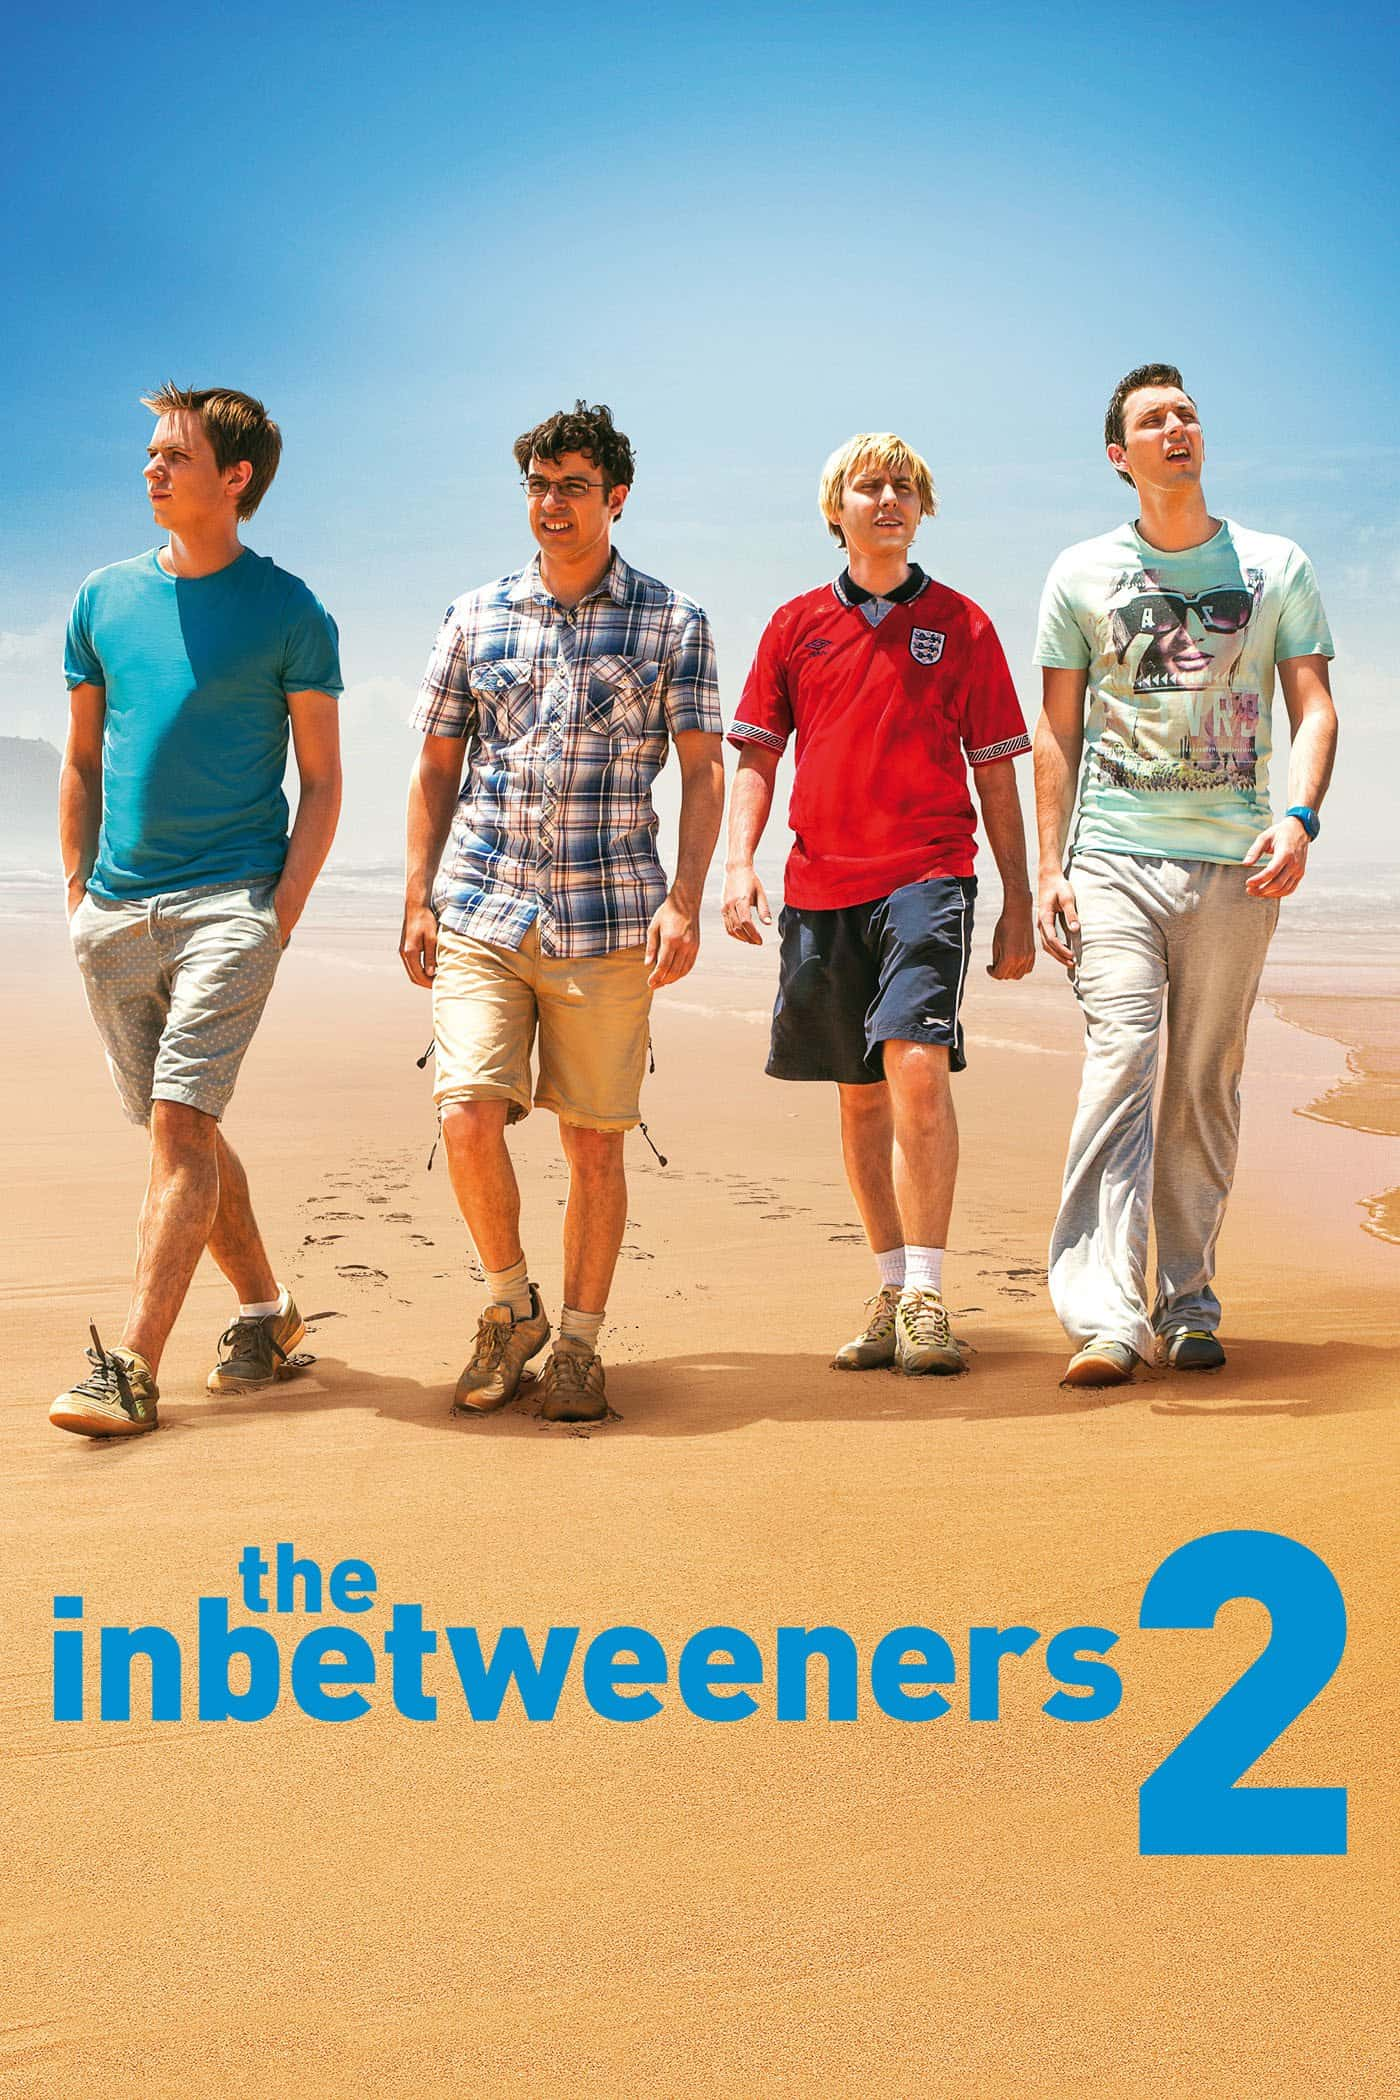 The Inbetweeners 2, 2014